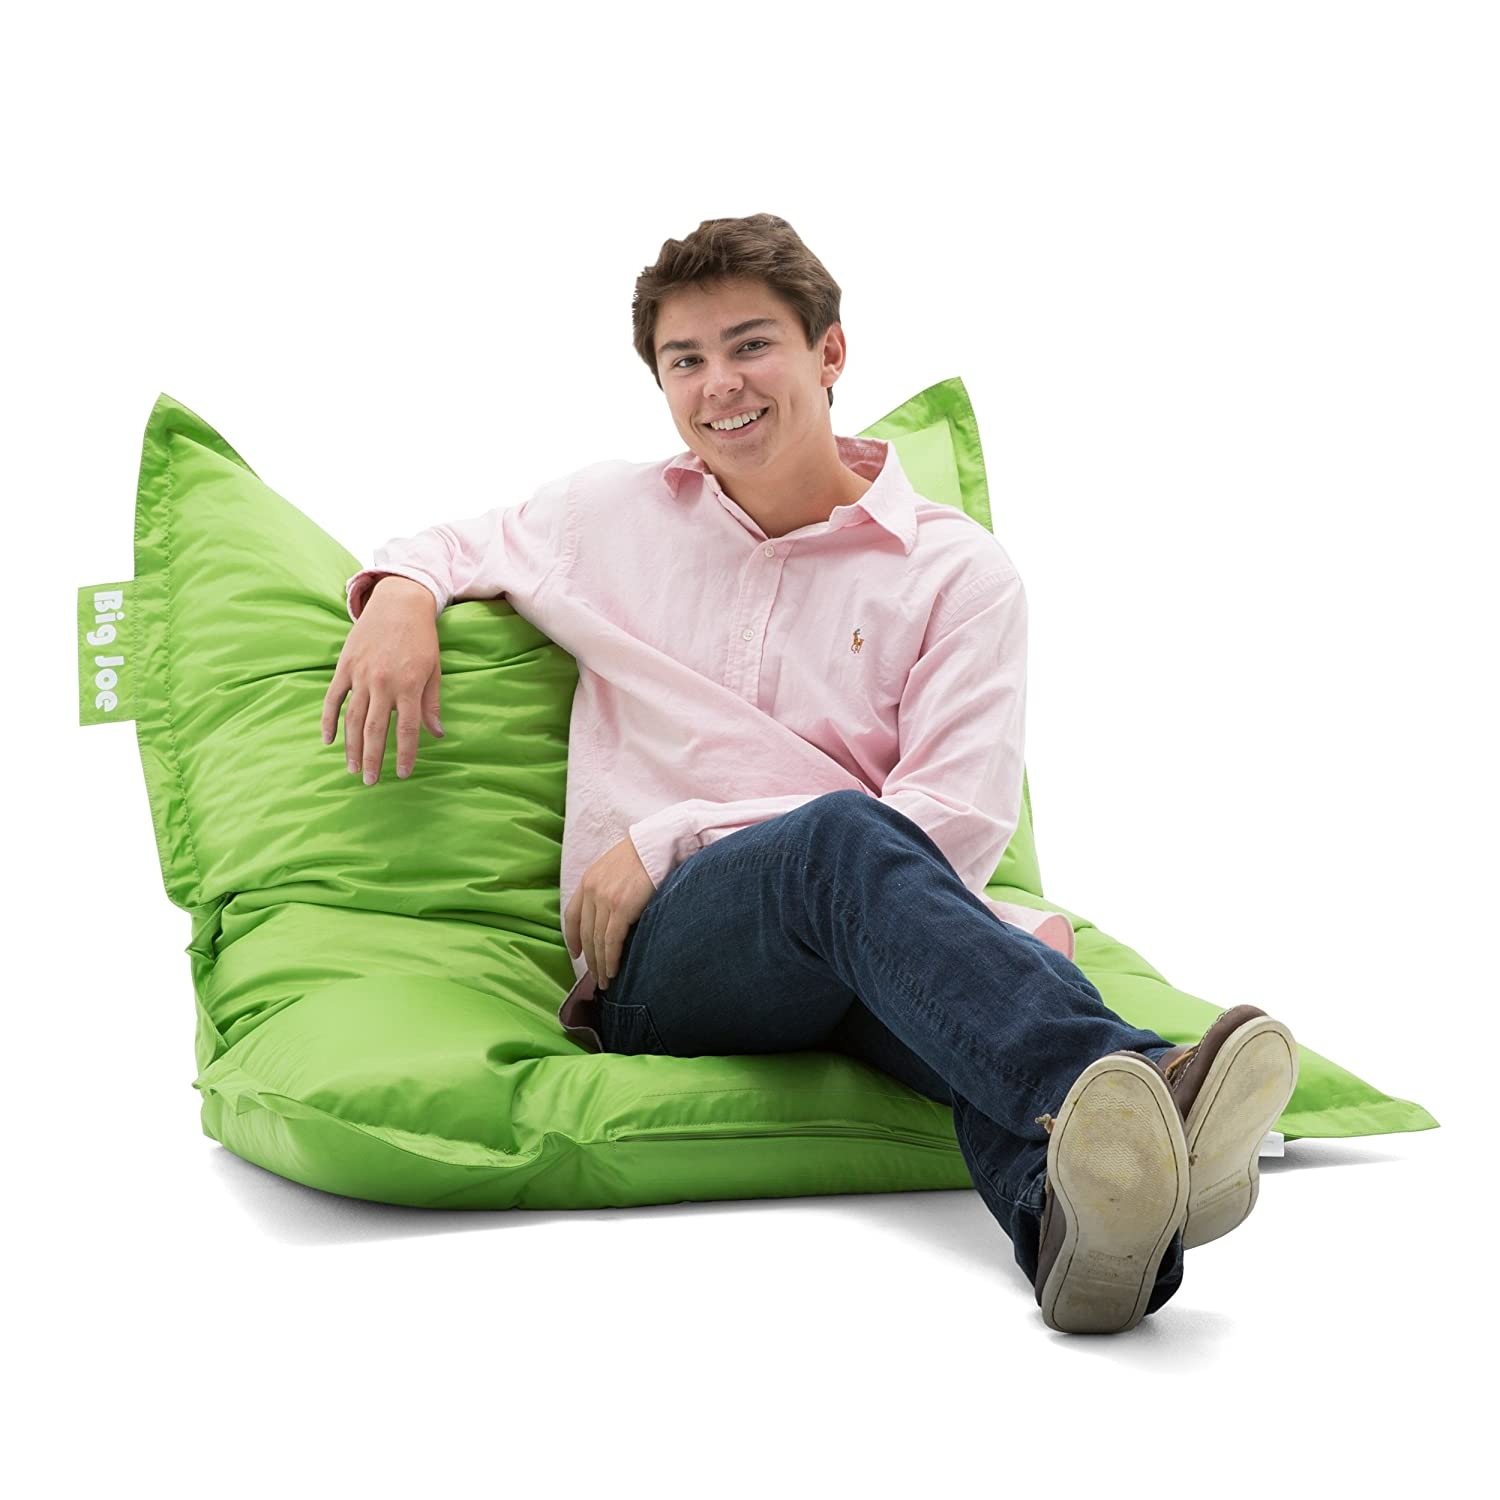 Bean bag chairs price - Big Joe Original Bean Bag Chair Spicy Lime